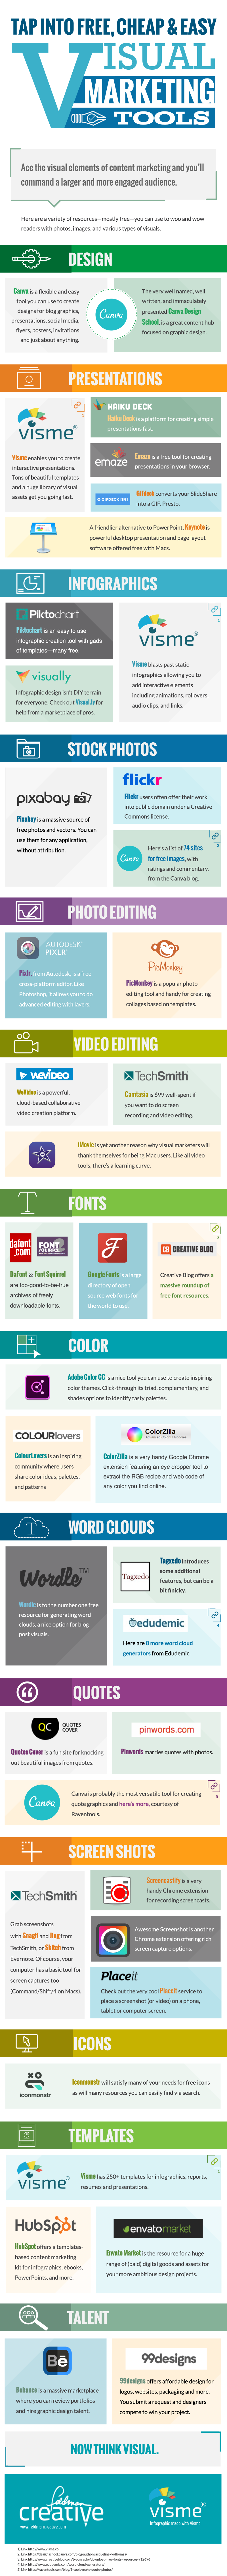 Easy Social Media Content Creation for Graphic designers - infographic